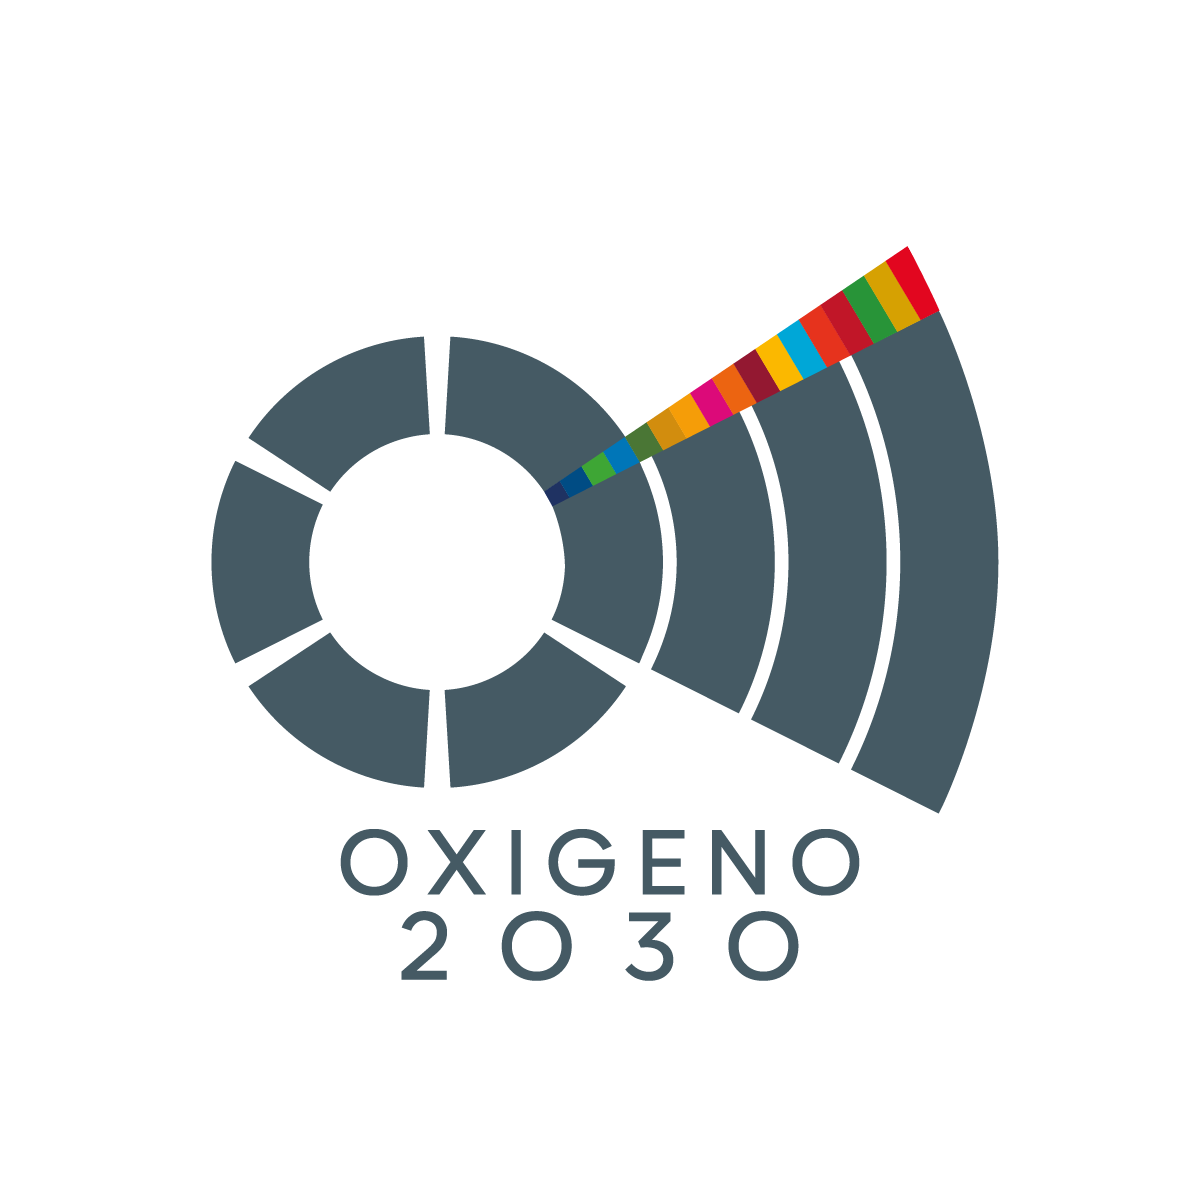 #Oxigeno2030: Tech entrepreneurs to offer free data plans and content to aid the Covid-19 Crisis Relief effort in Mexico